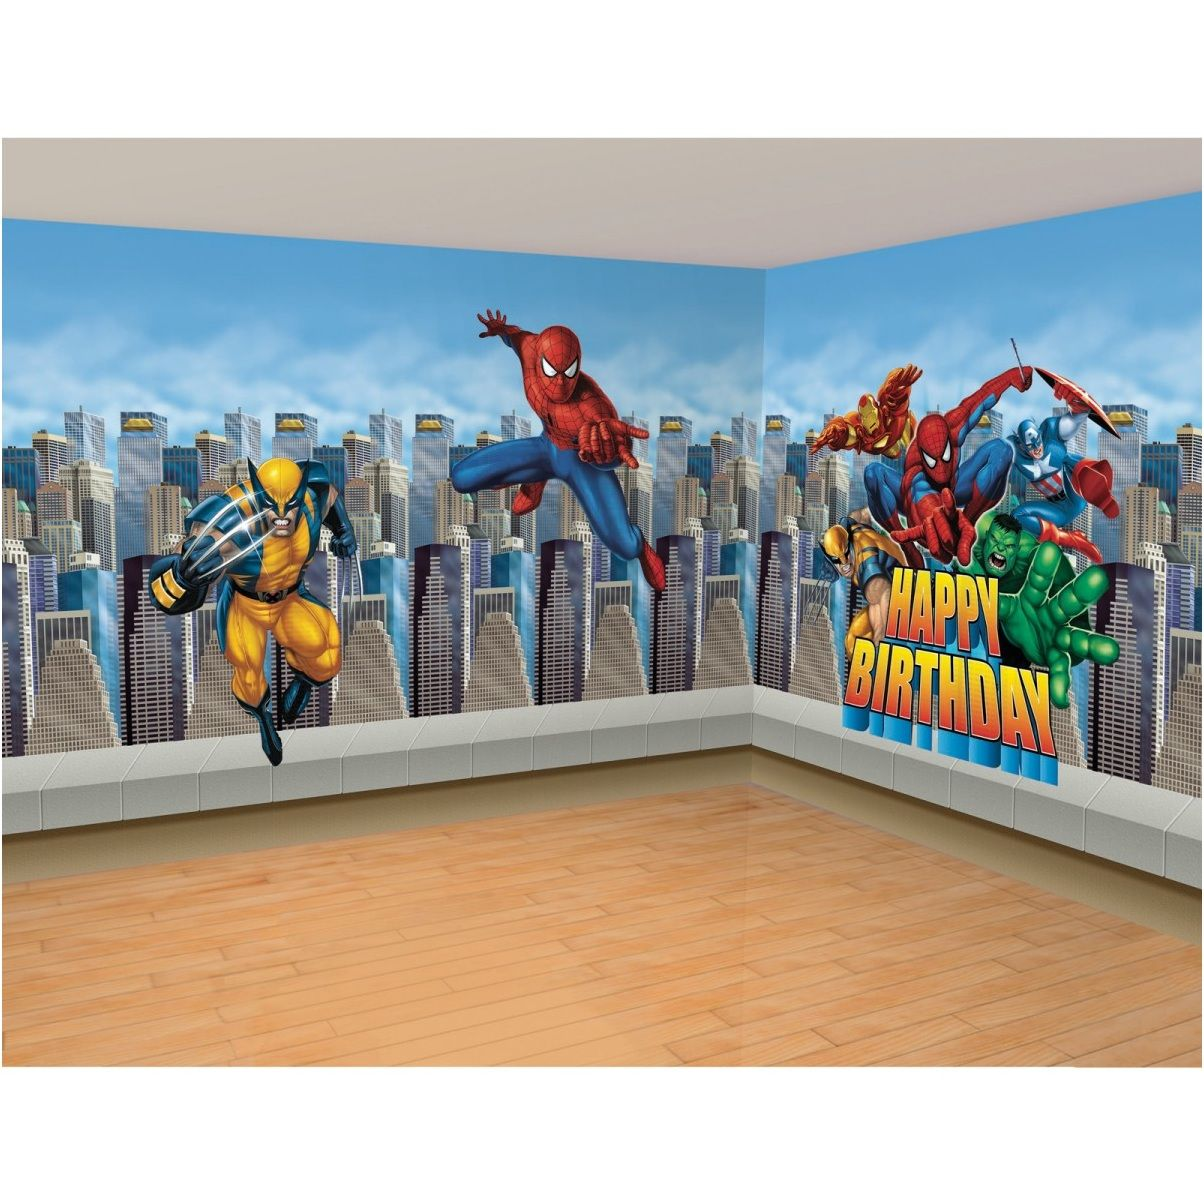 Marvel Themed Room Stunning Marvel Super Hero Bedroom Wall Decal Ideas  My Favs  Pinterest Design Inspiration